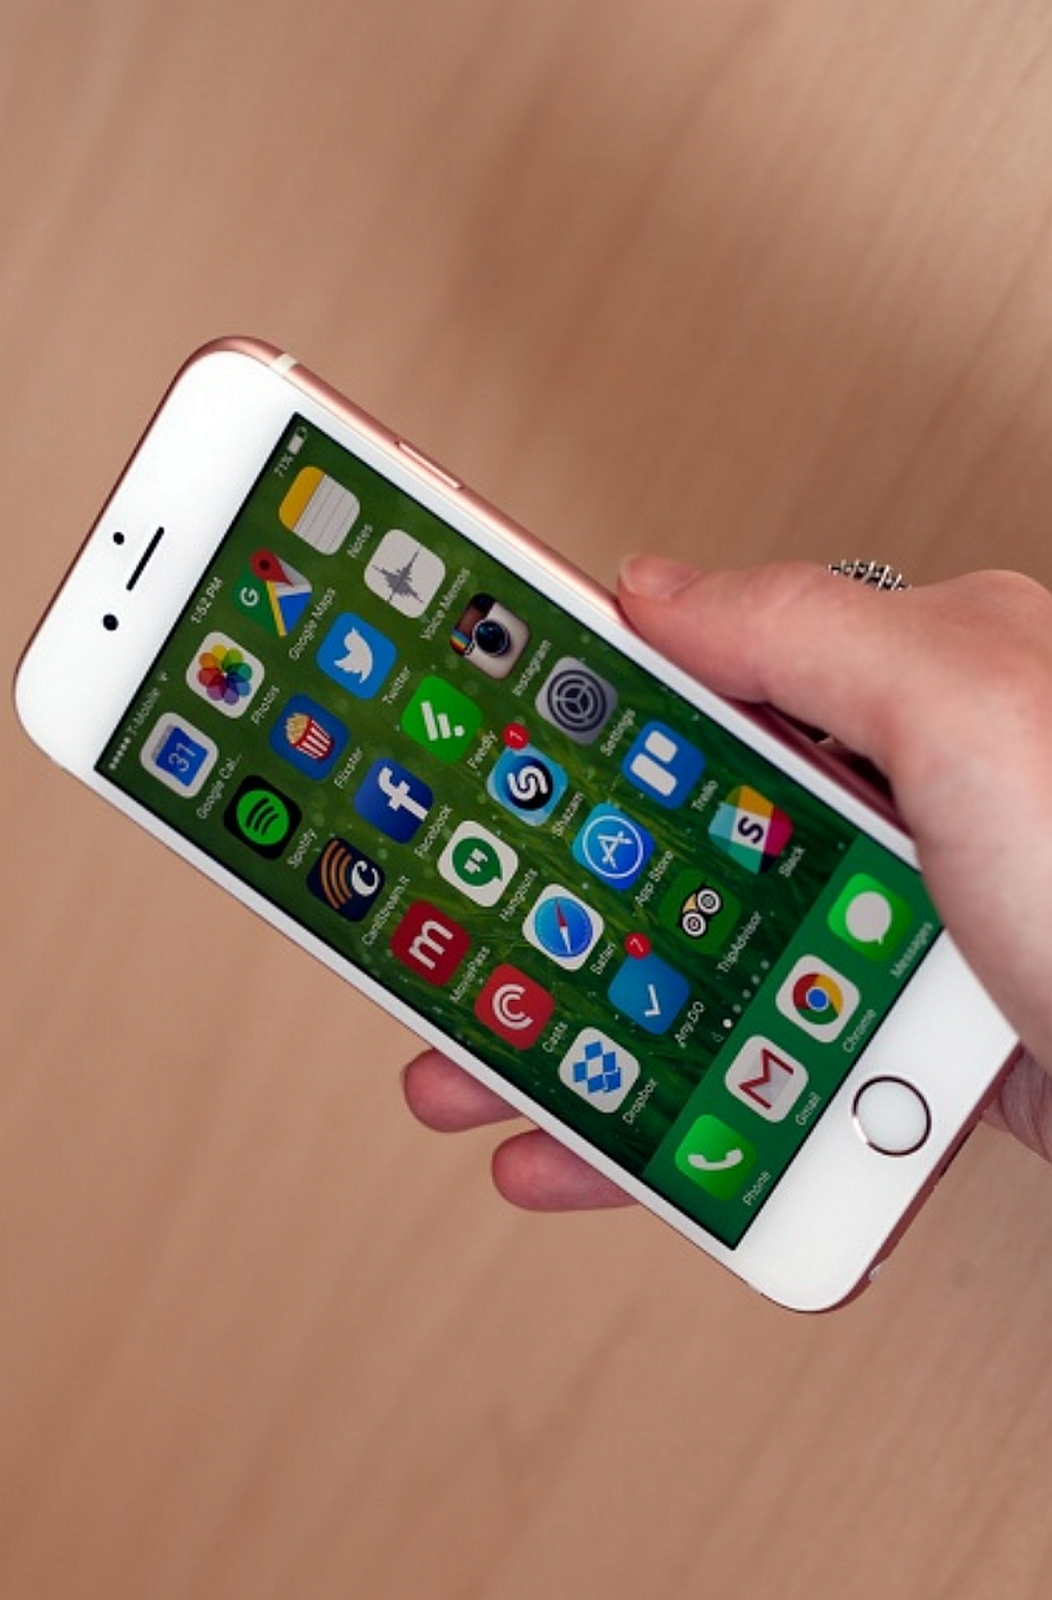 iphone 6s user guide ios 9